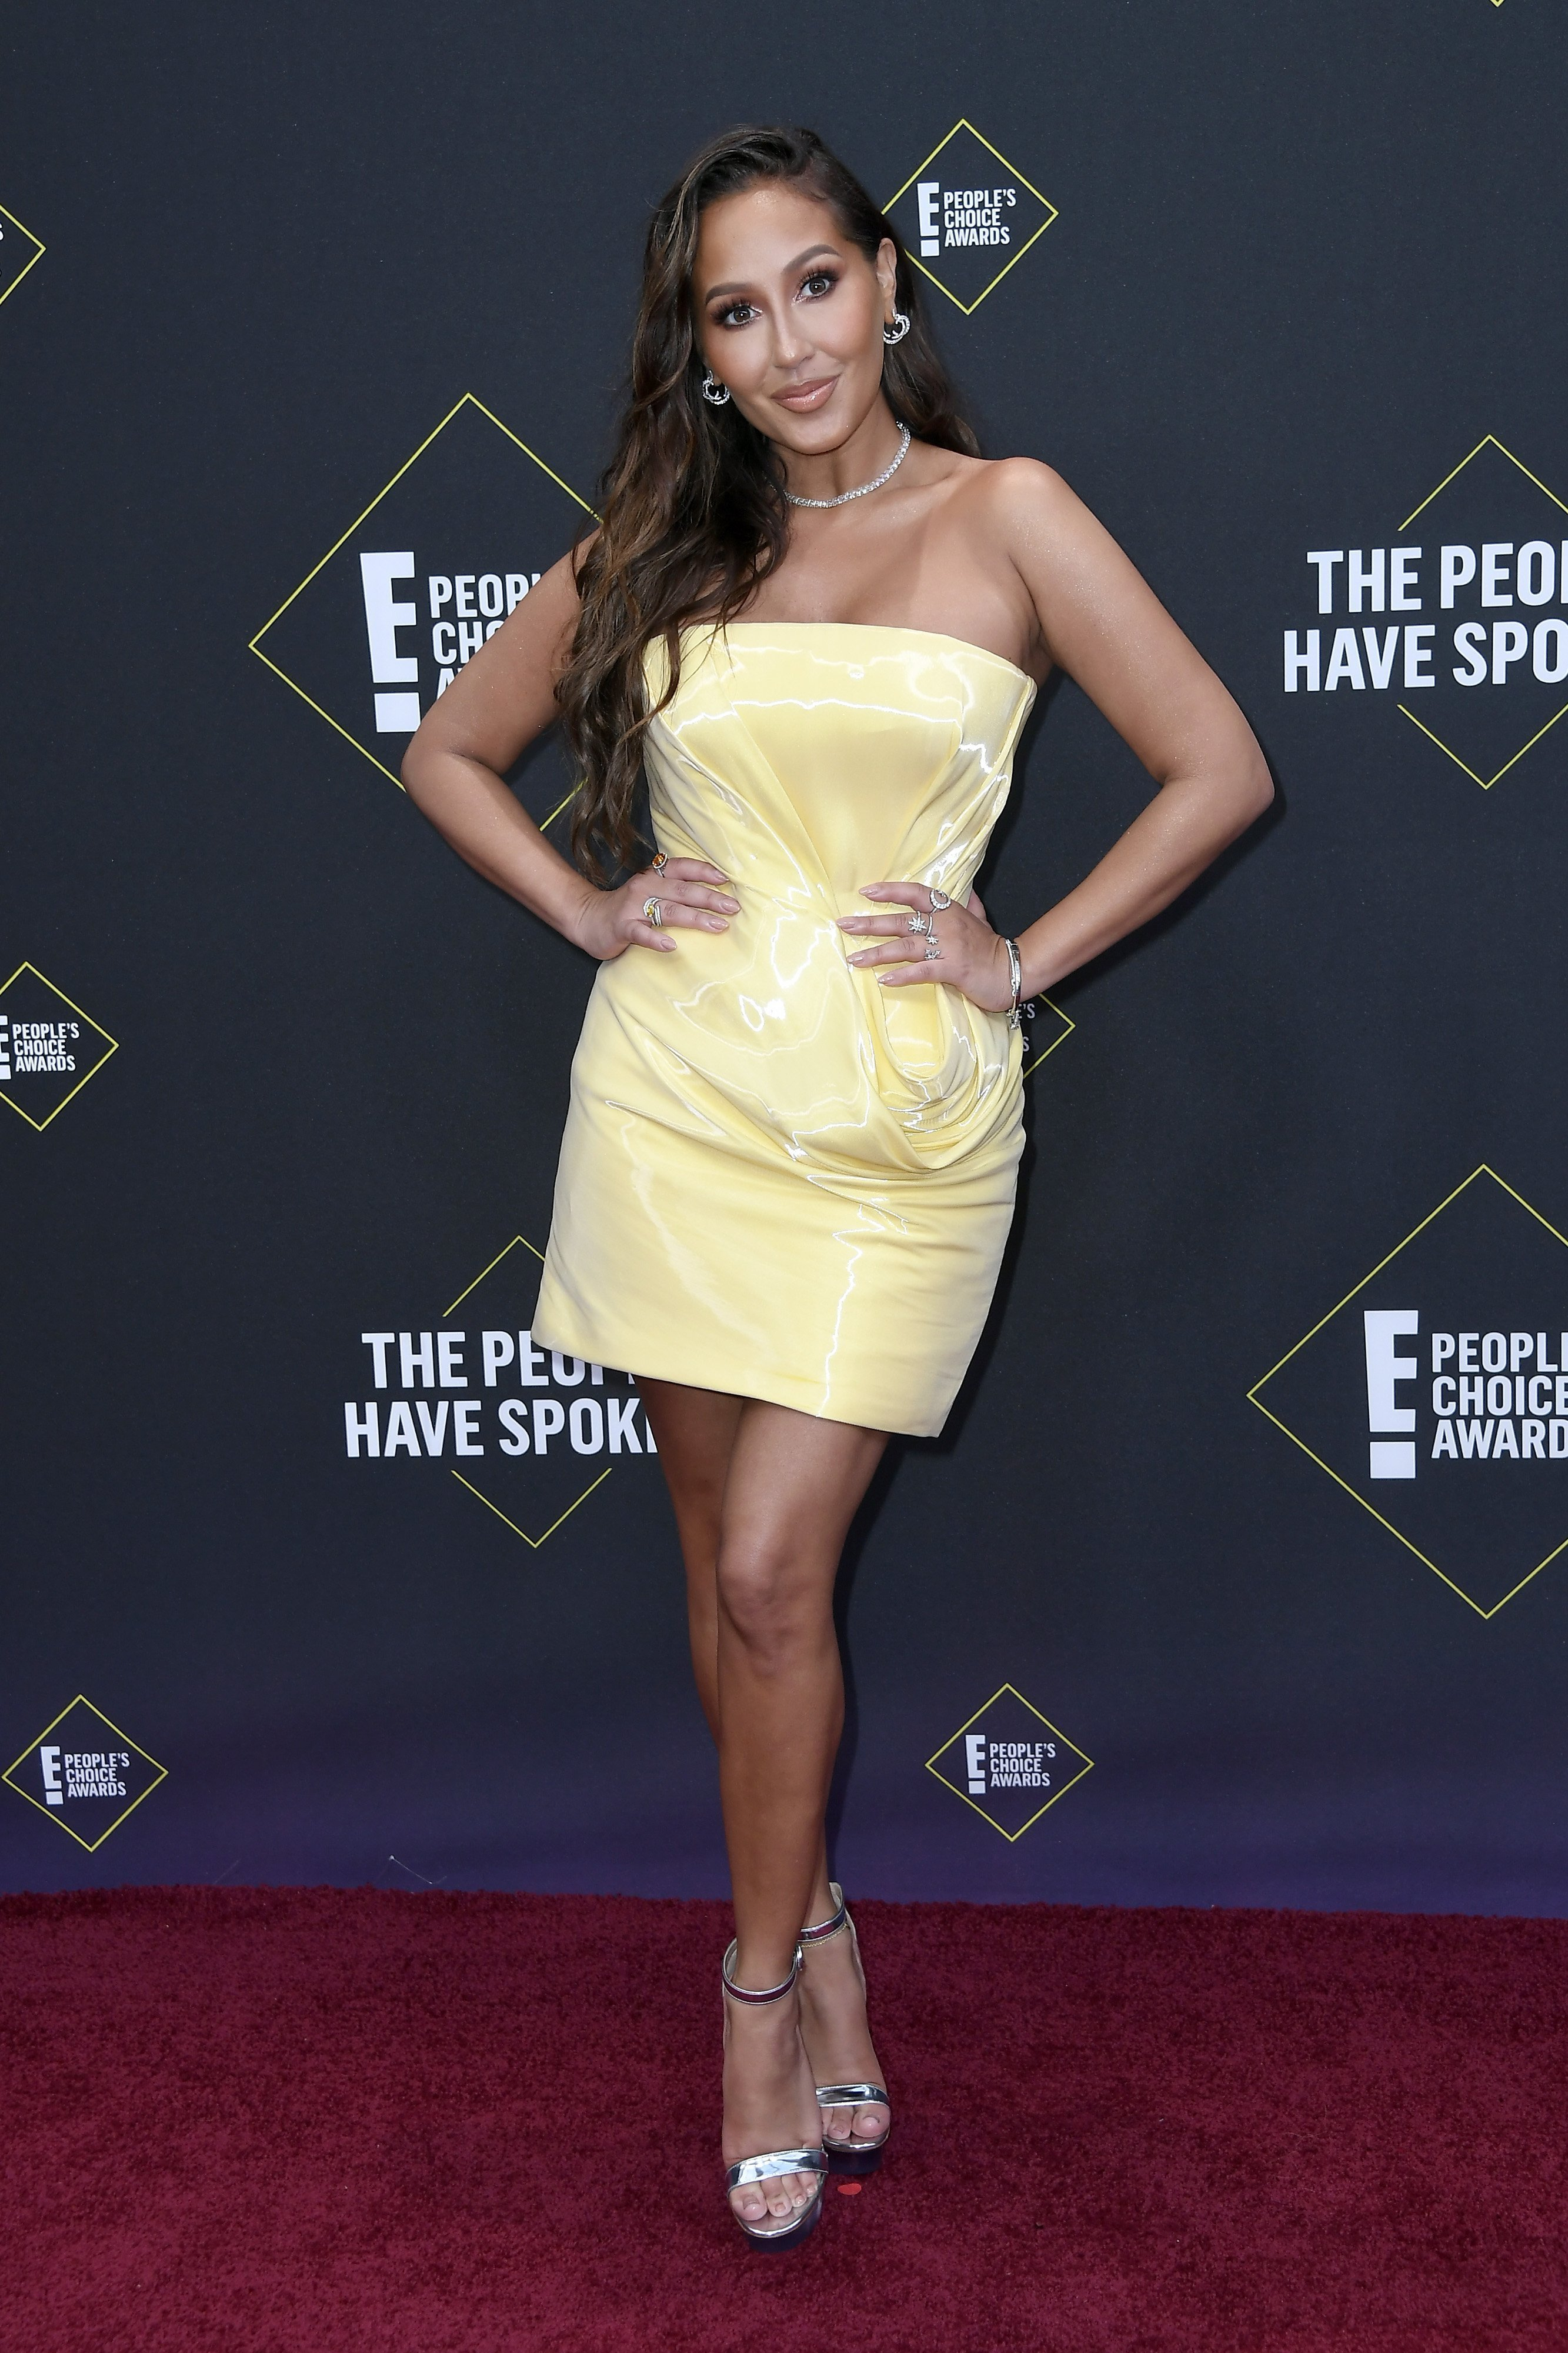 Adrienne Houghton attends the 2019 E! People's Choice Awards at Barker Hangar on November 10, 2019 | Photo: GettyImages